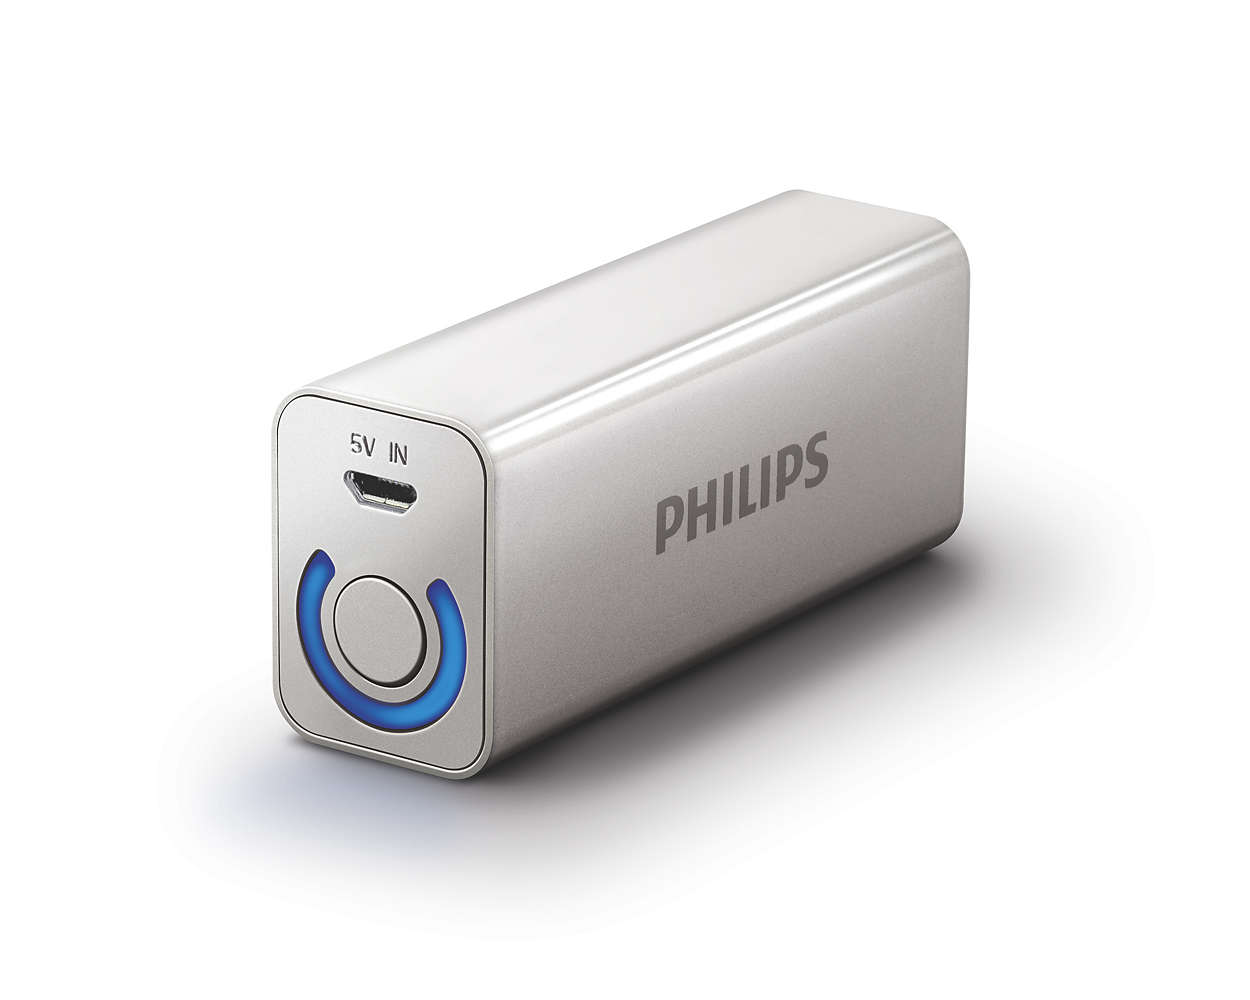 Recharge your phone on the go